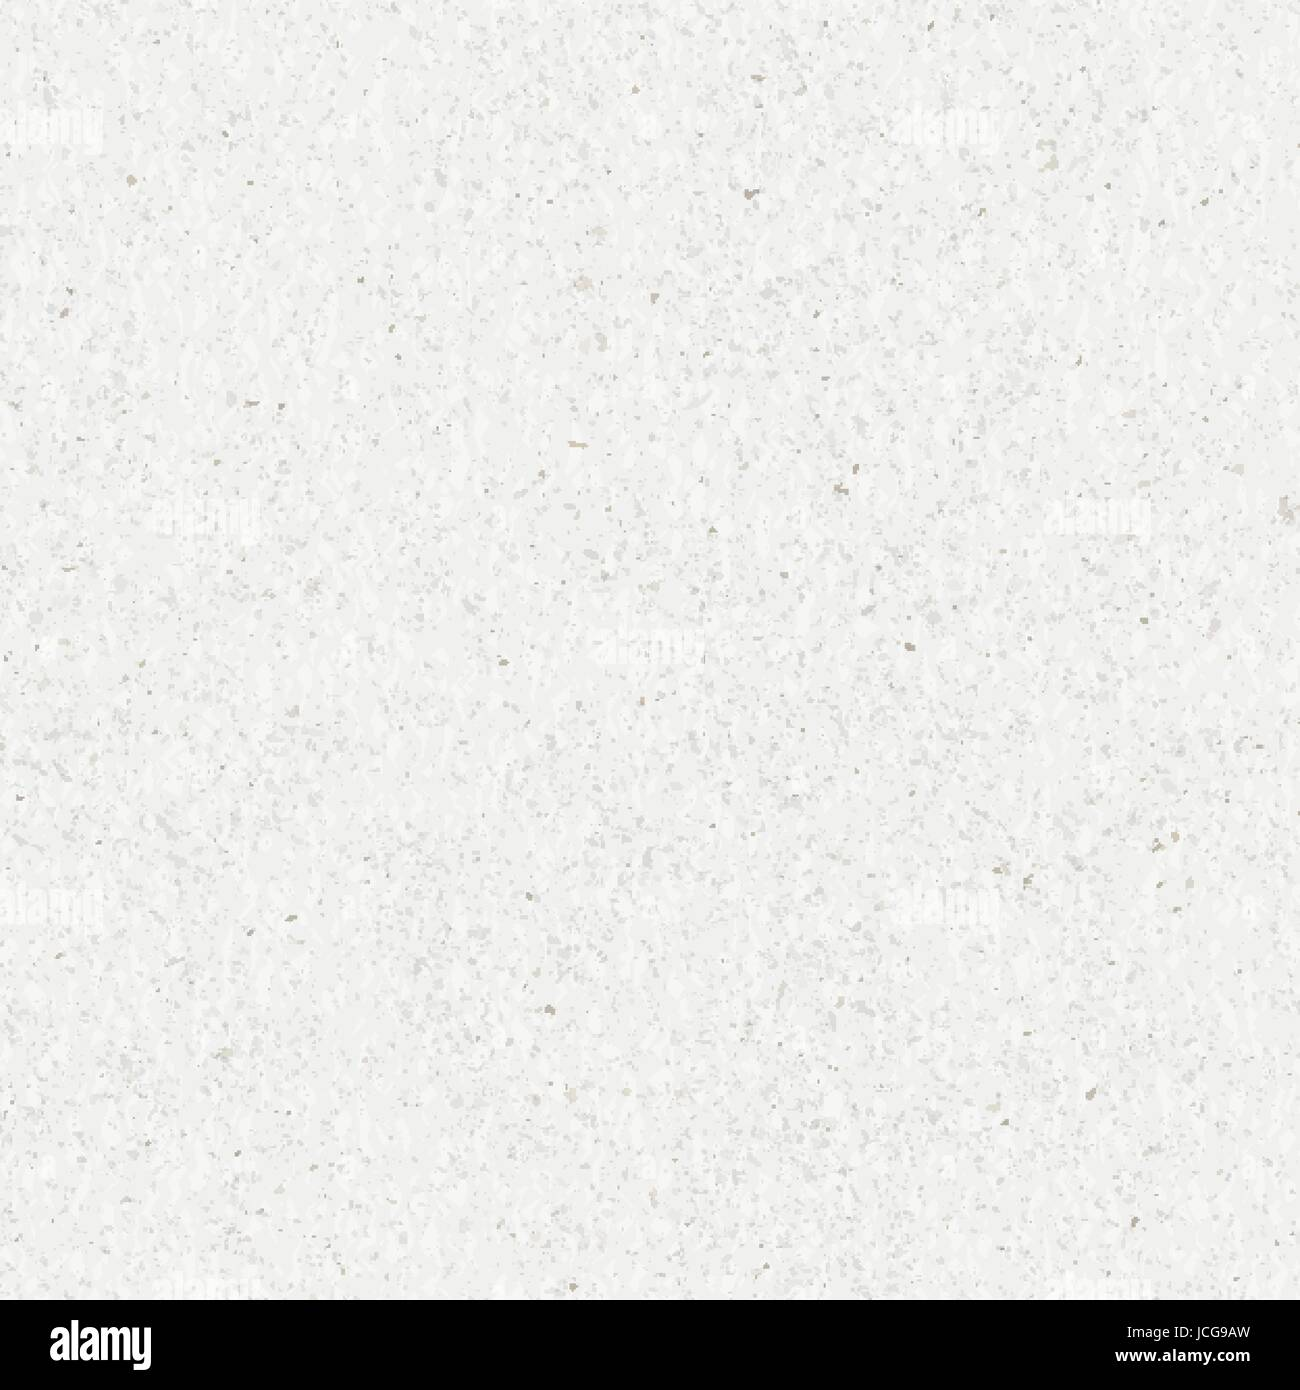 Watercolor Paper Texture. Grunge background. Vector illustration - Stock Image